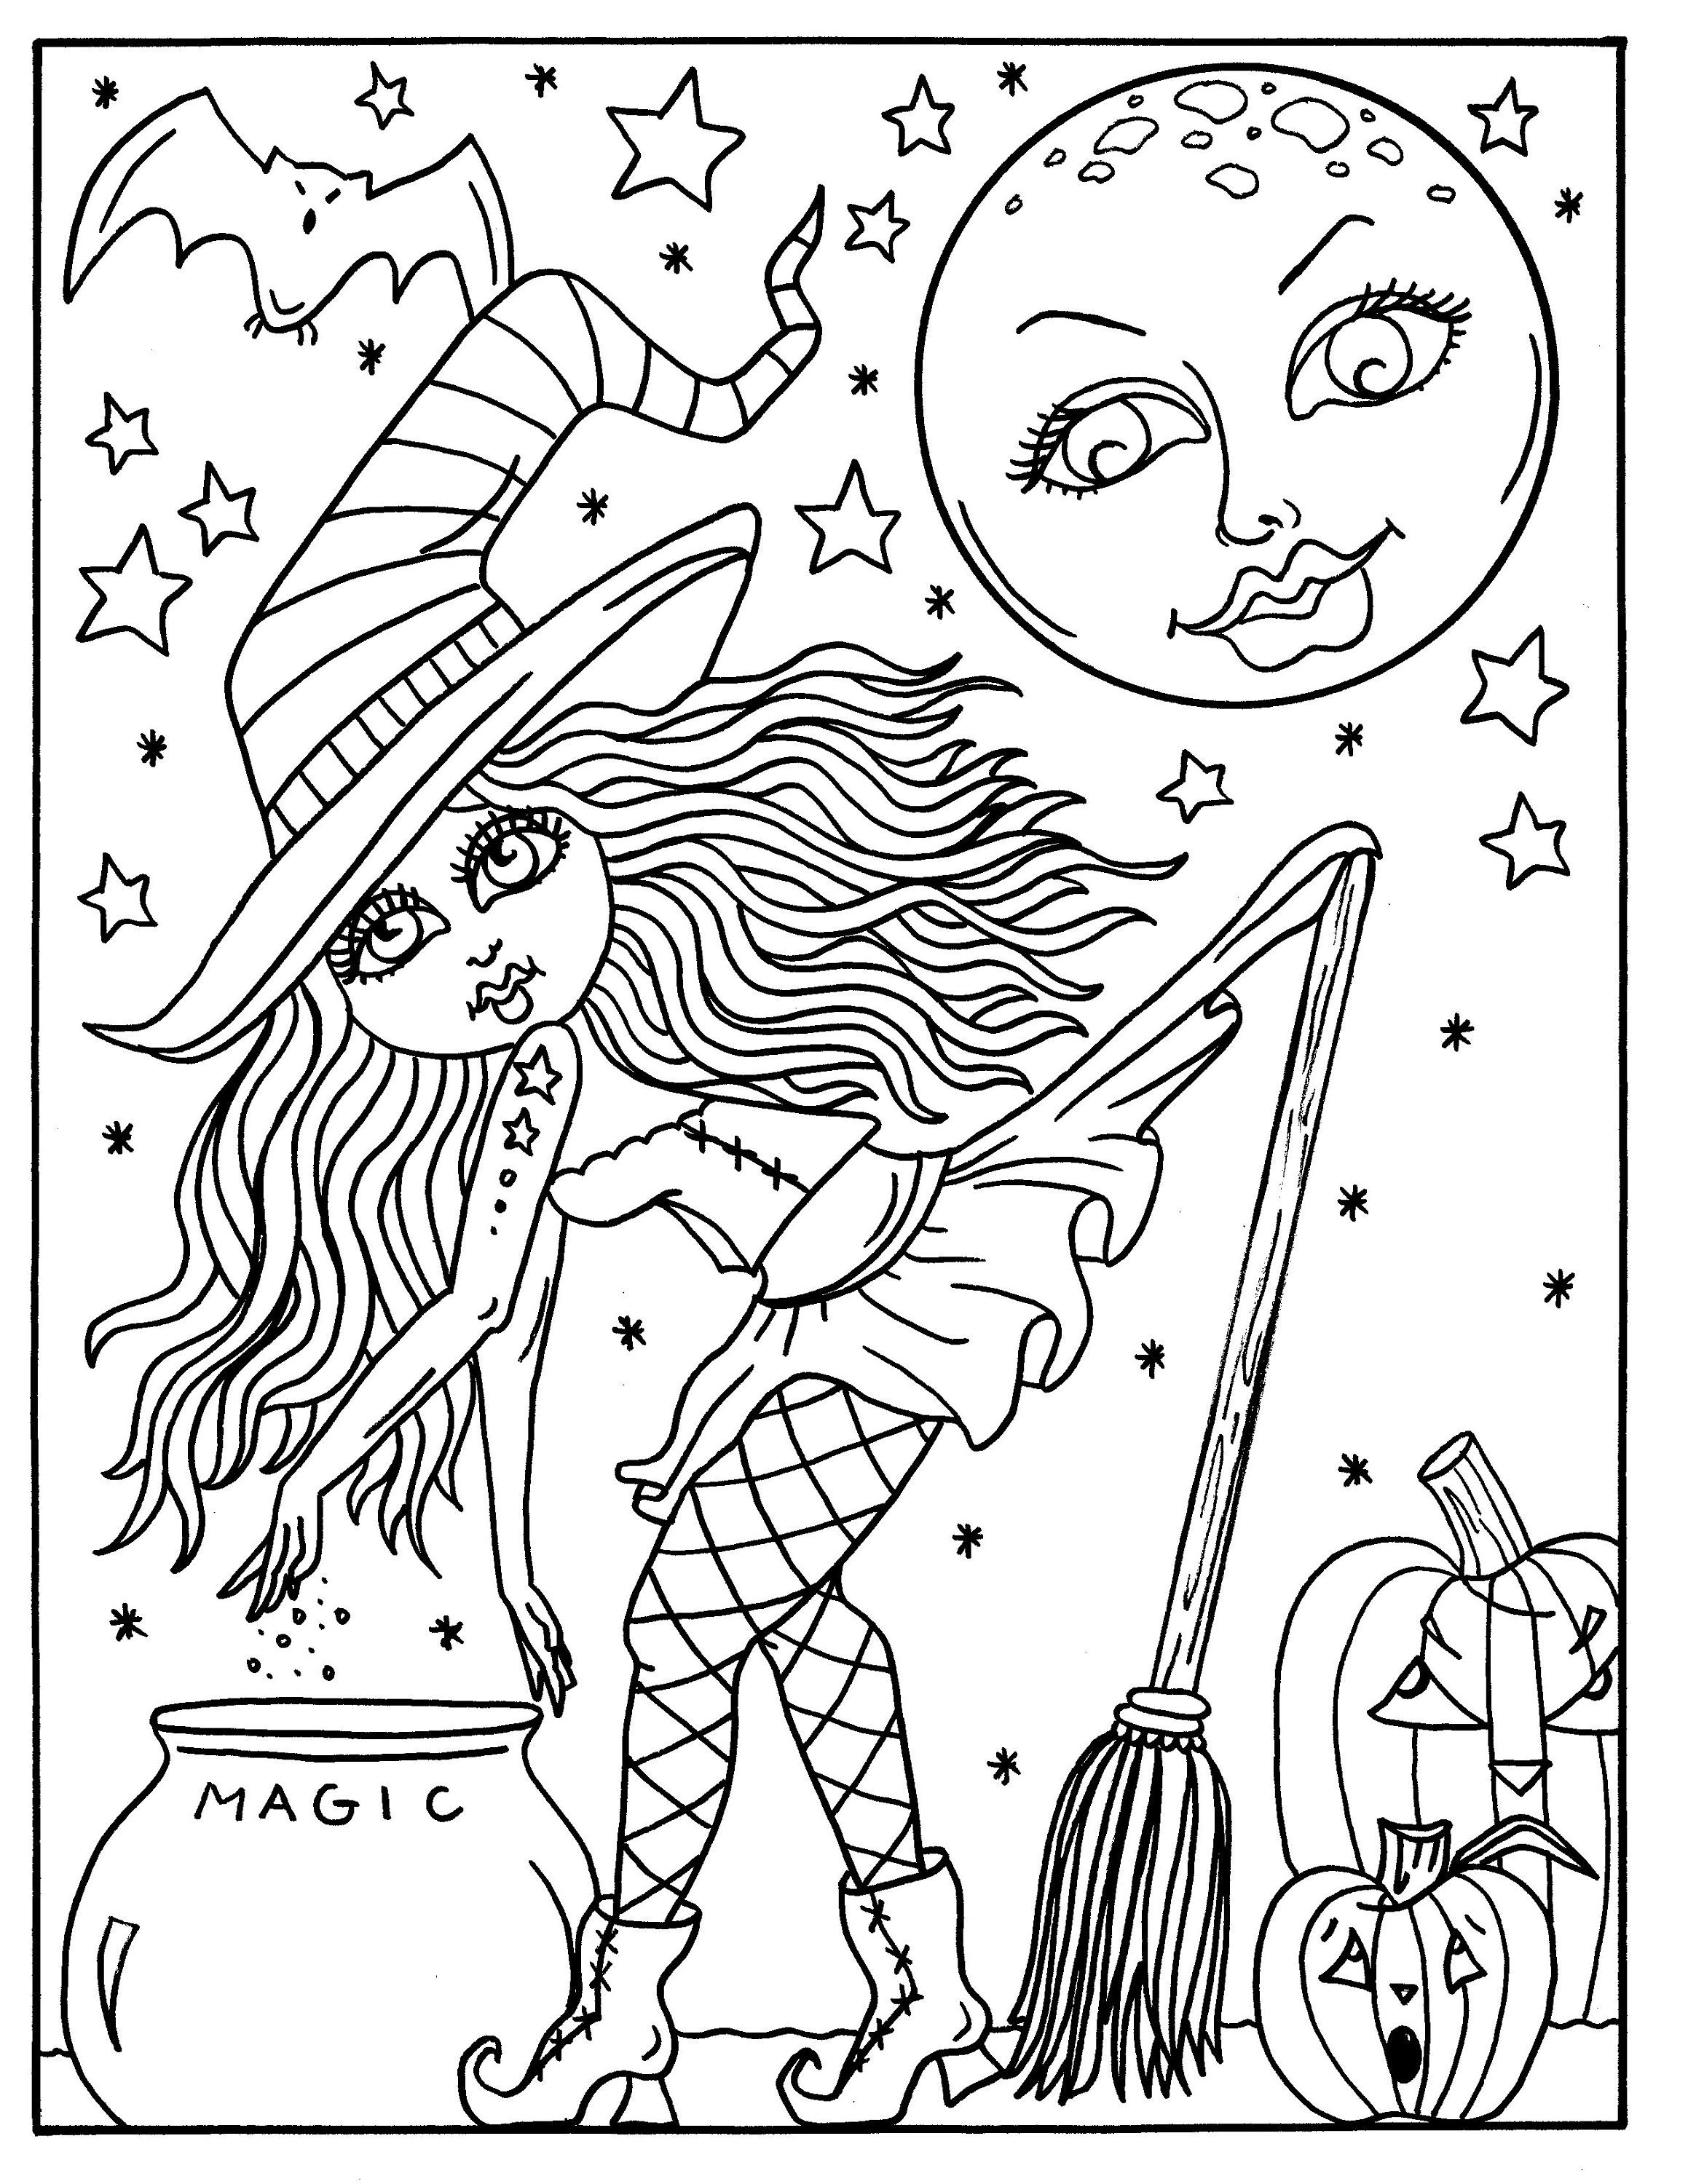 Hocus Pocus Witches Printable Coloring Pages For Adults Halloween Fun Halloween Witch Whimsical Coloring Book Halloween Coloring Book Halloween Coloring Book Witch Coloring Pages Halloween Coloring